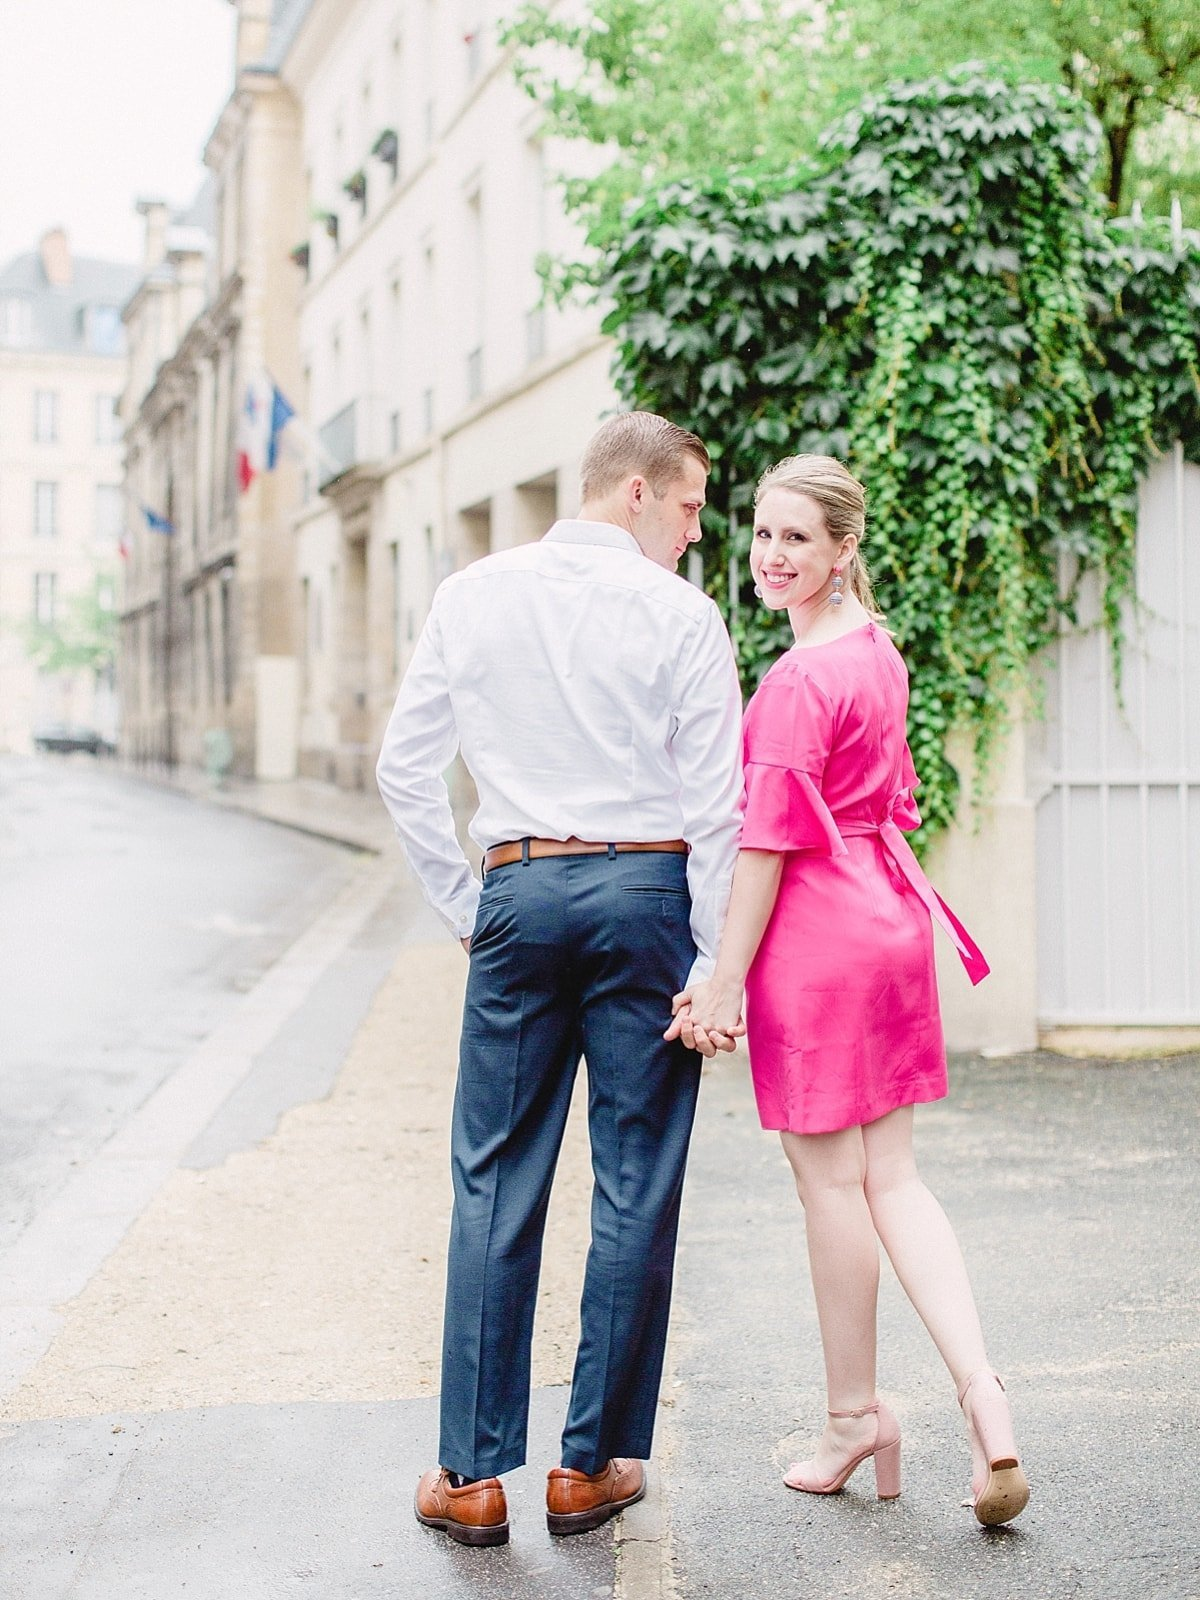 paris-photo-session-anniversary-alicia-yarrish-photography_37